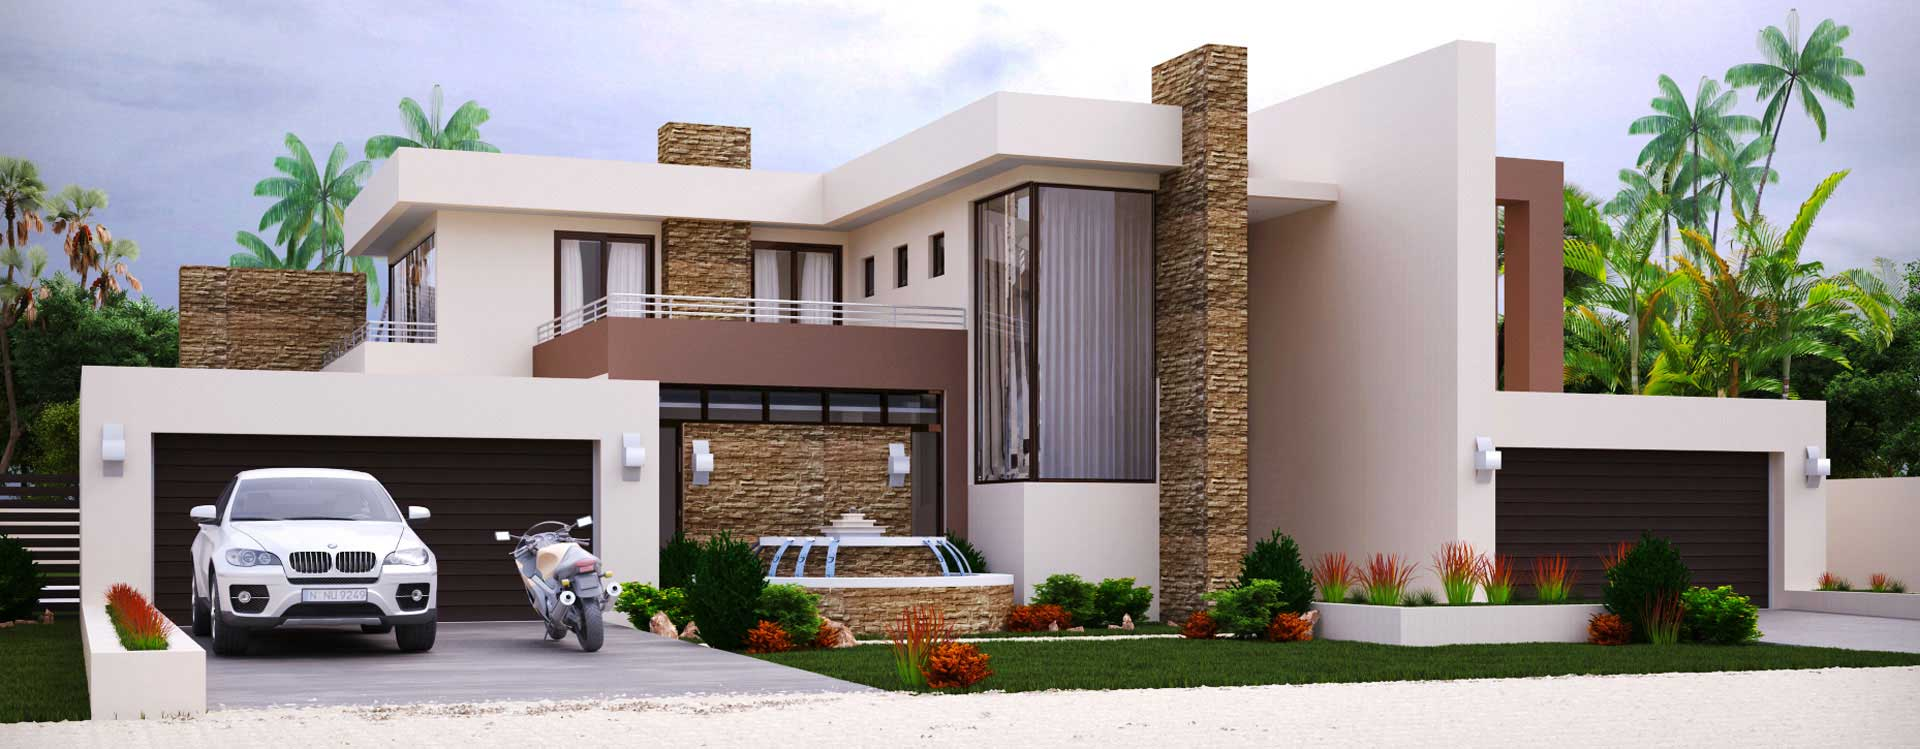 modern architectural drawings in pakistan